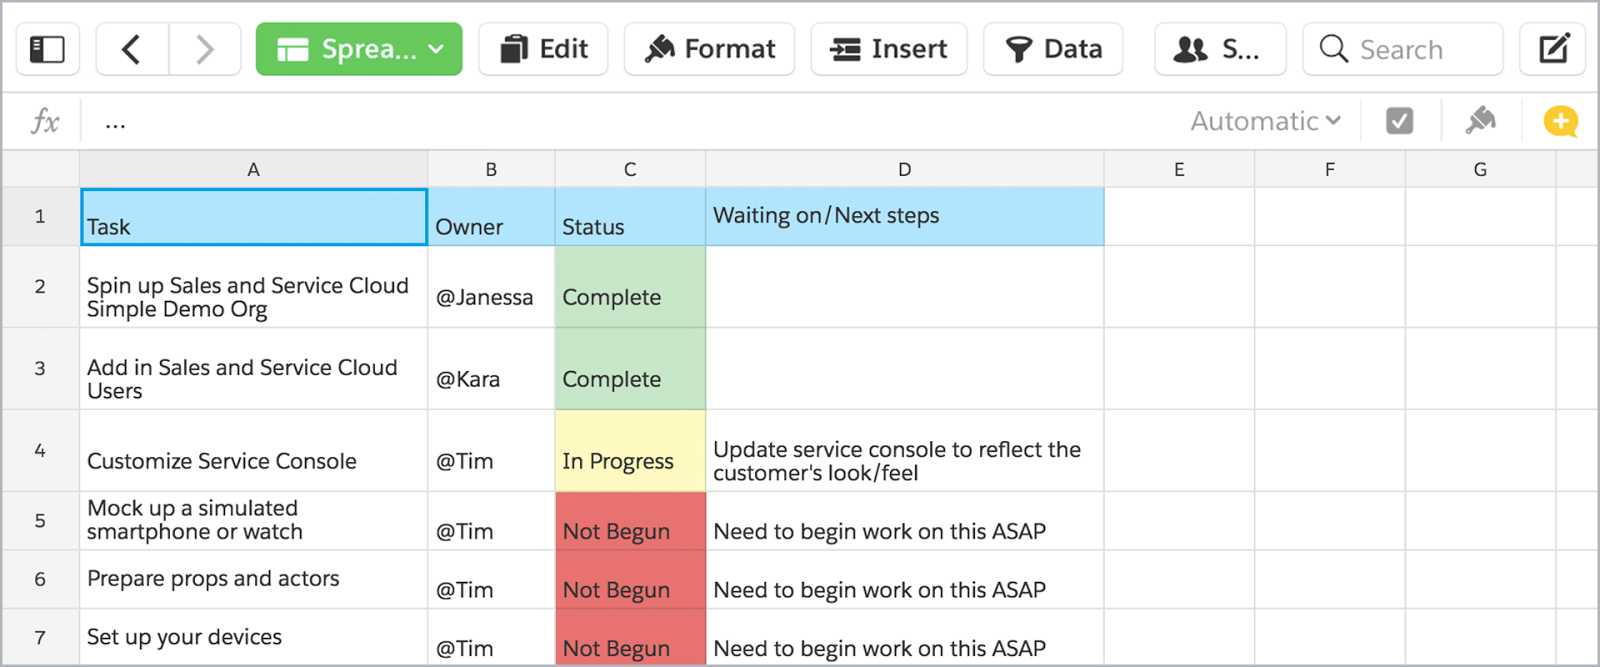 Sample burndown list created in Quip with columns for Task, Owner, Status, and Next Steps